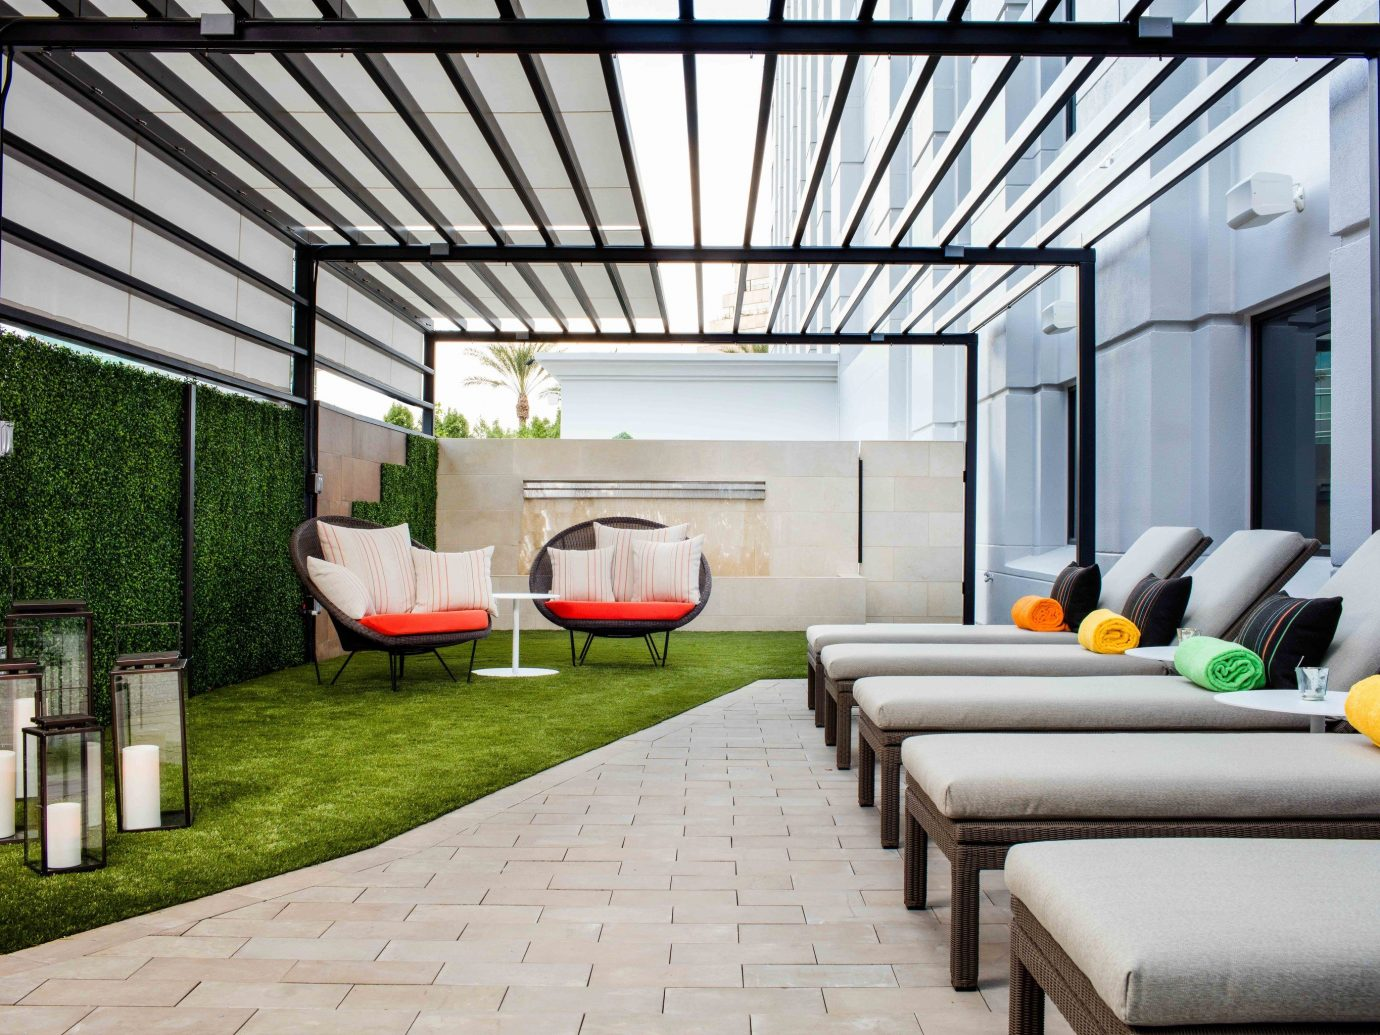 roof interior design real estate outdoor structure backyard house Patio pergola estate Courtyard daylighting